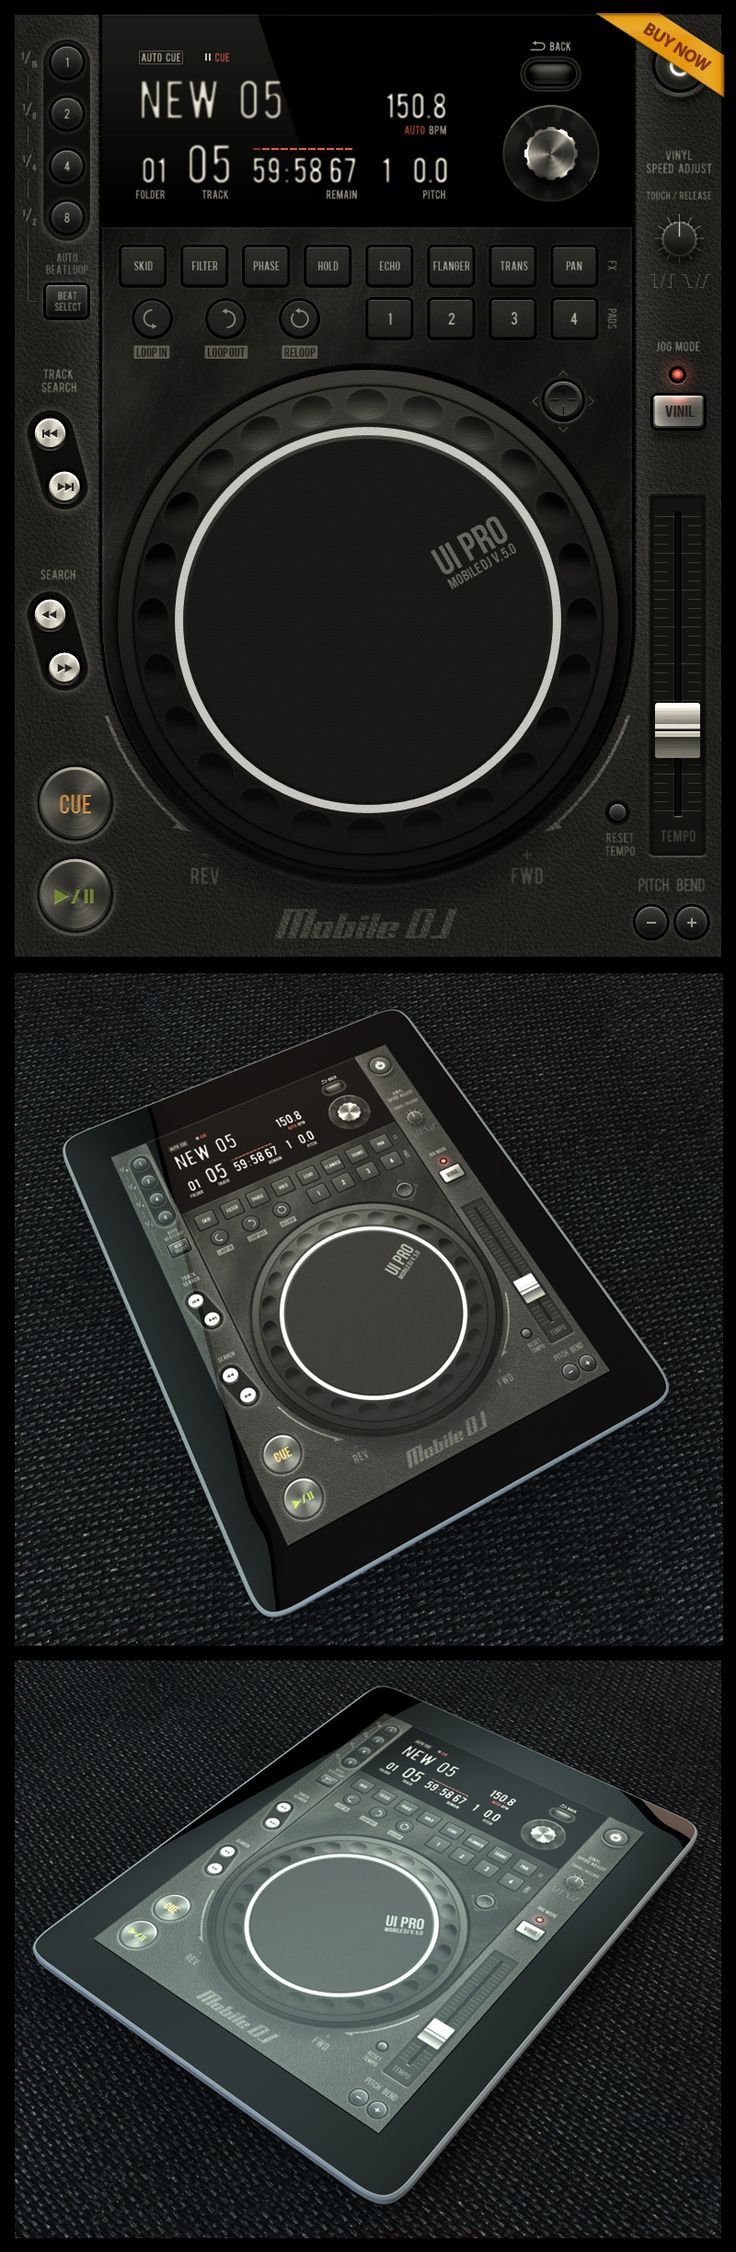 Mobile DJ Tablet #ui #ios #iPad